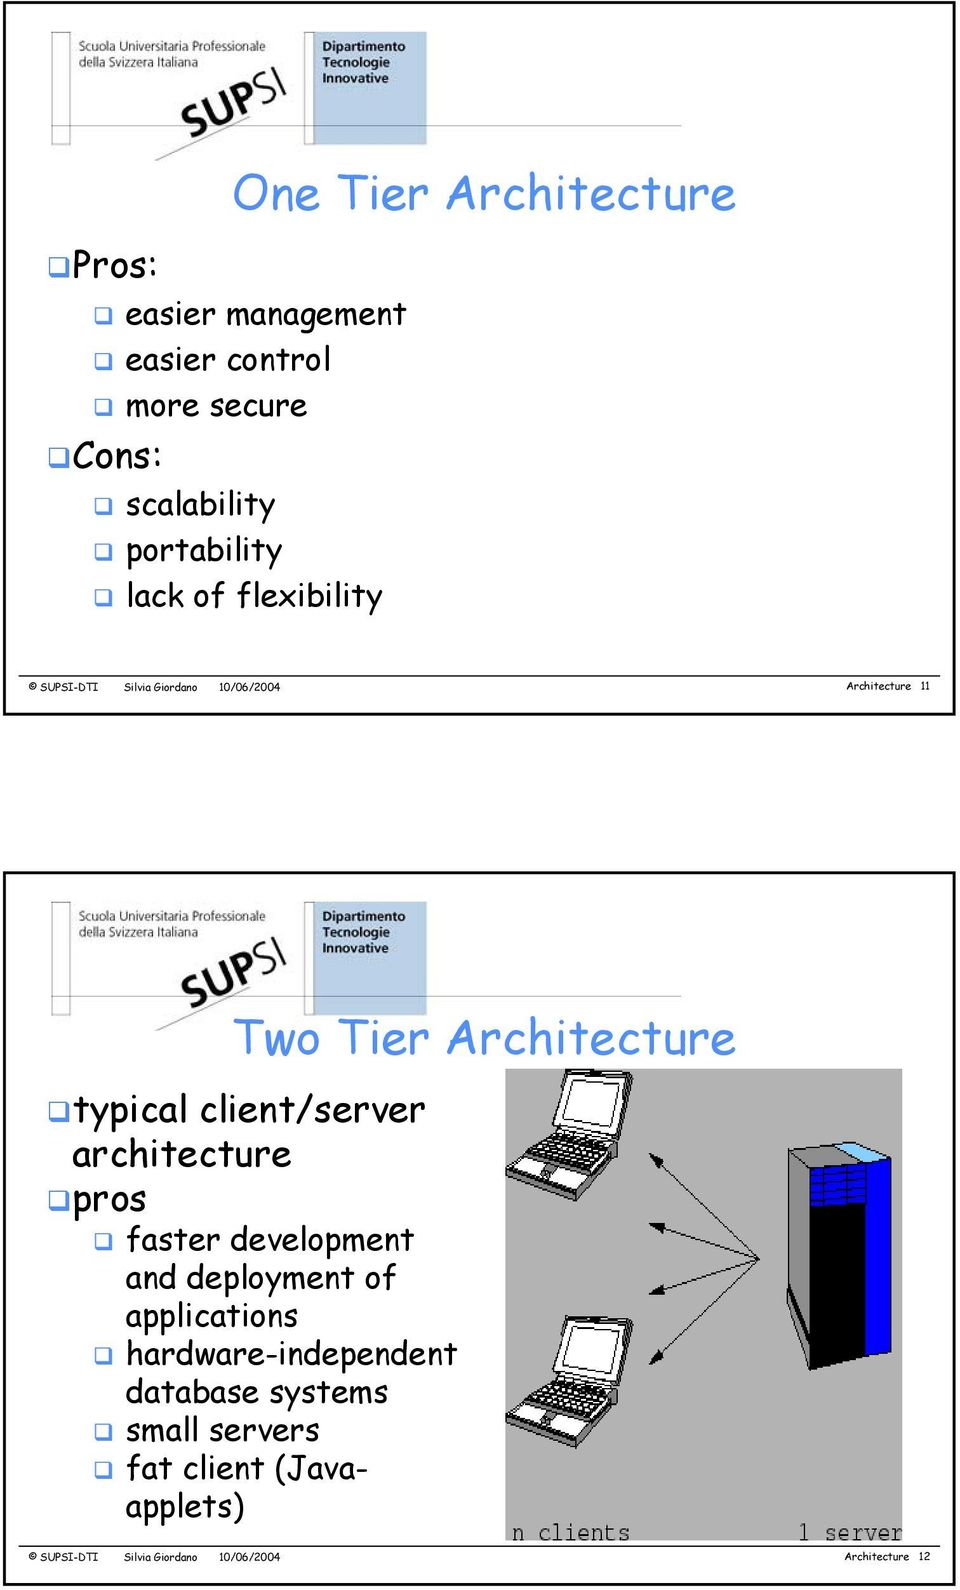 client/server architecture pros faster development and deployment of applications hardware-independent